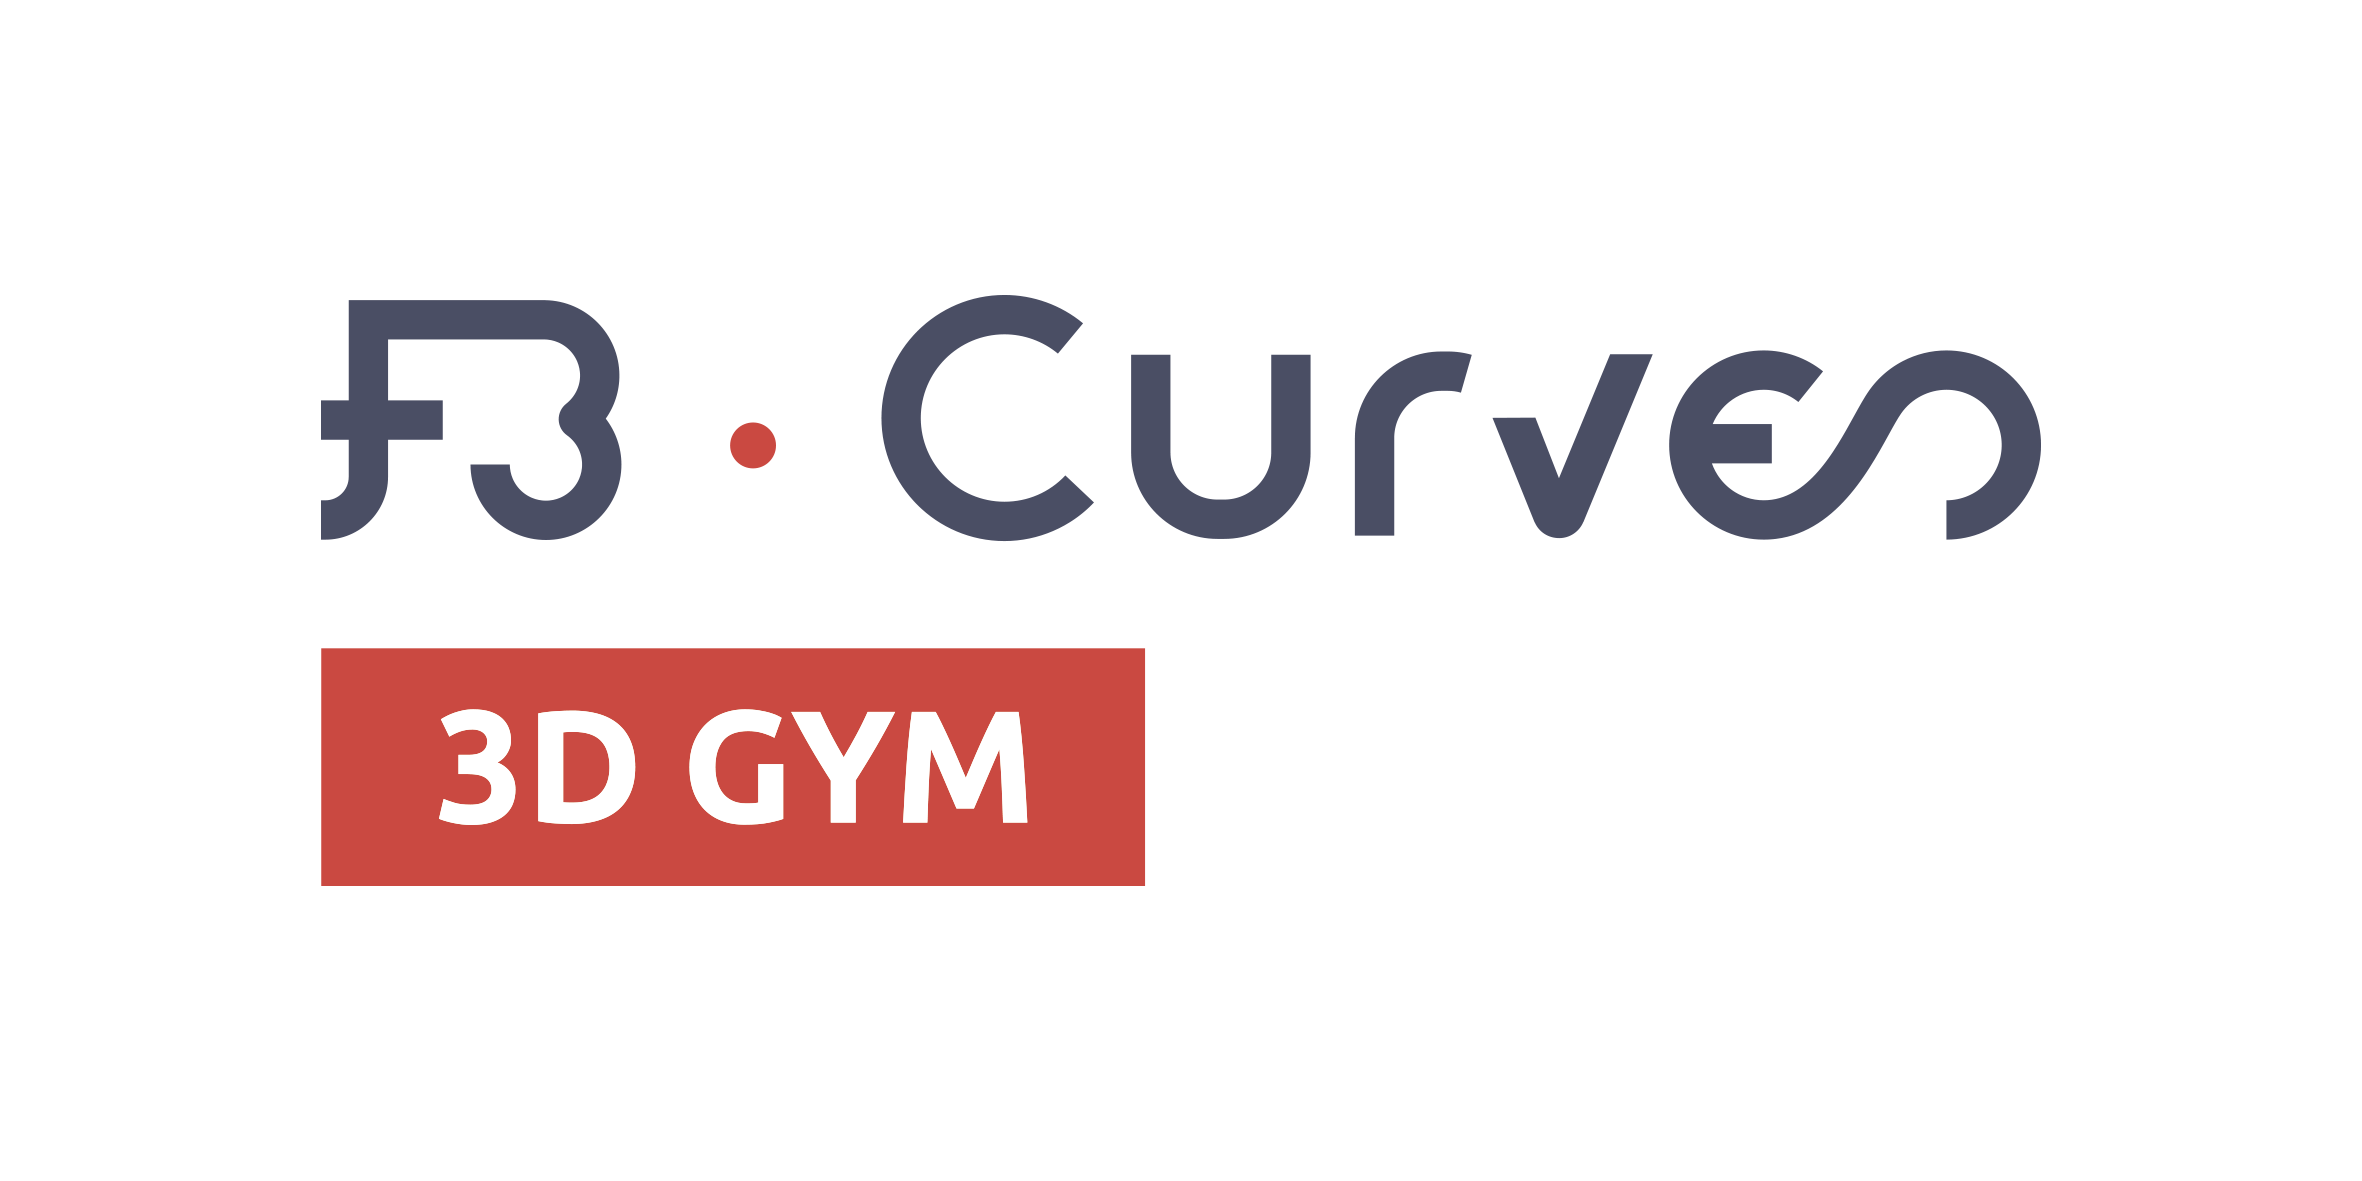 FB Curves 3D Gym